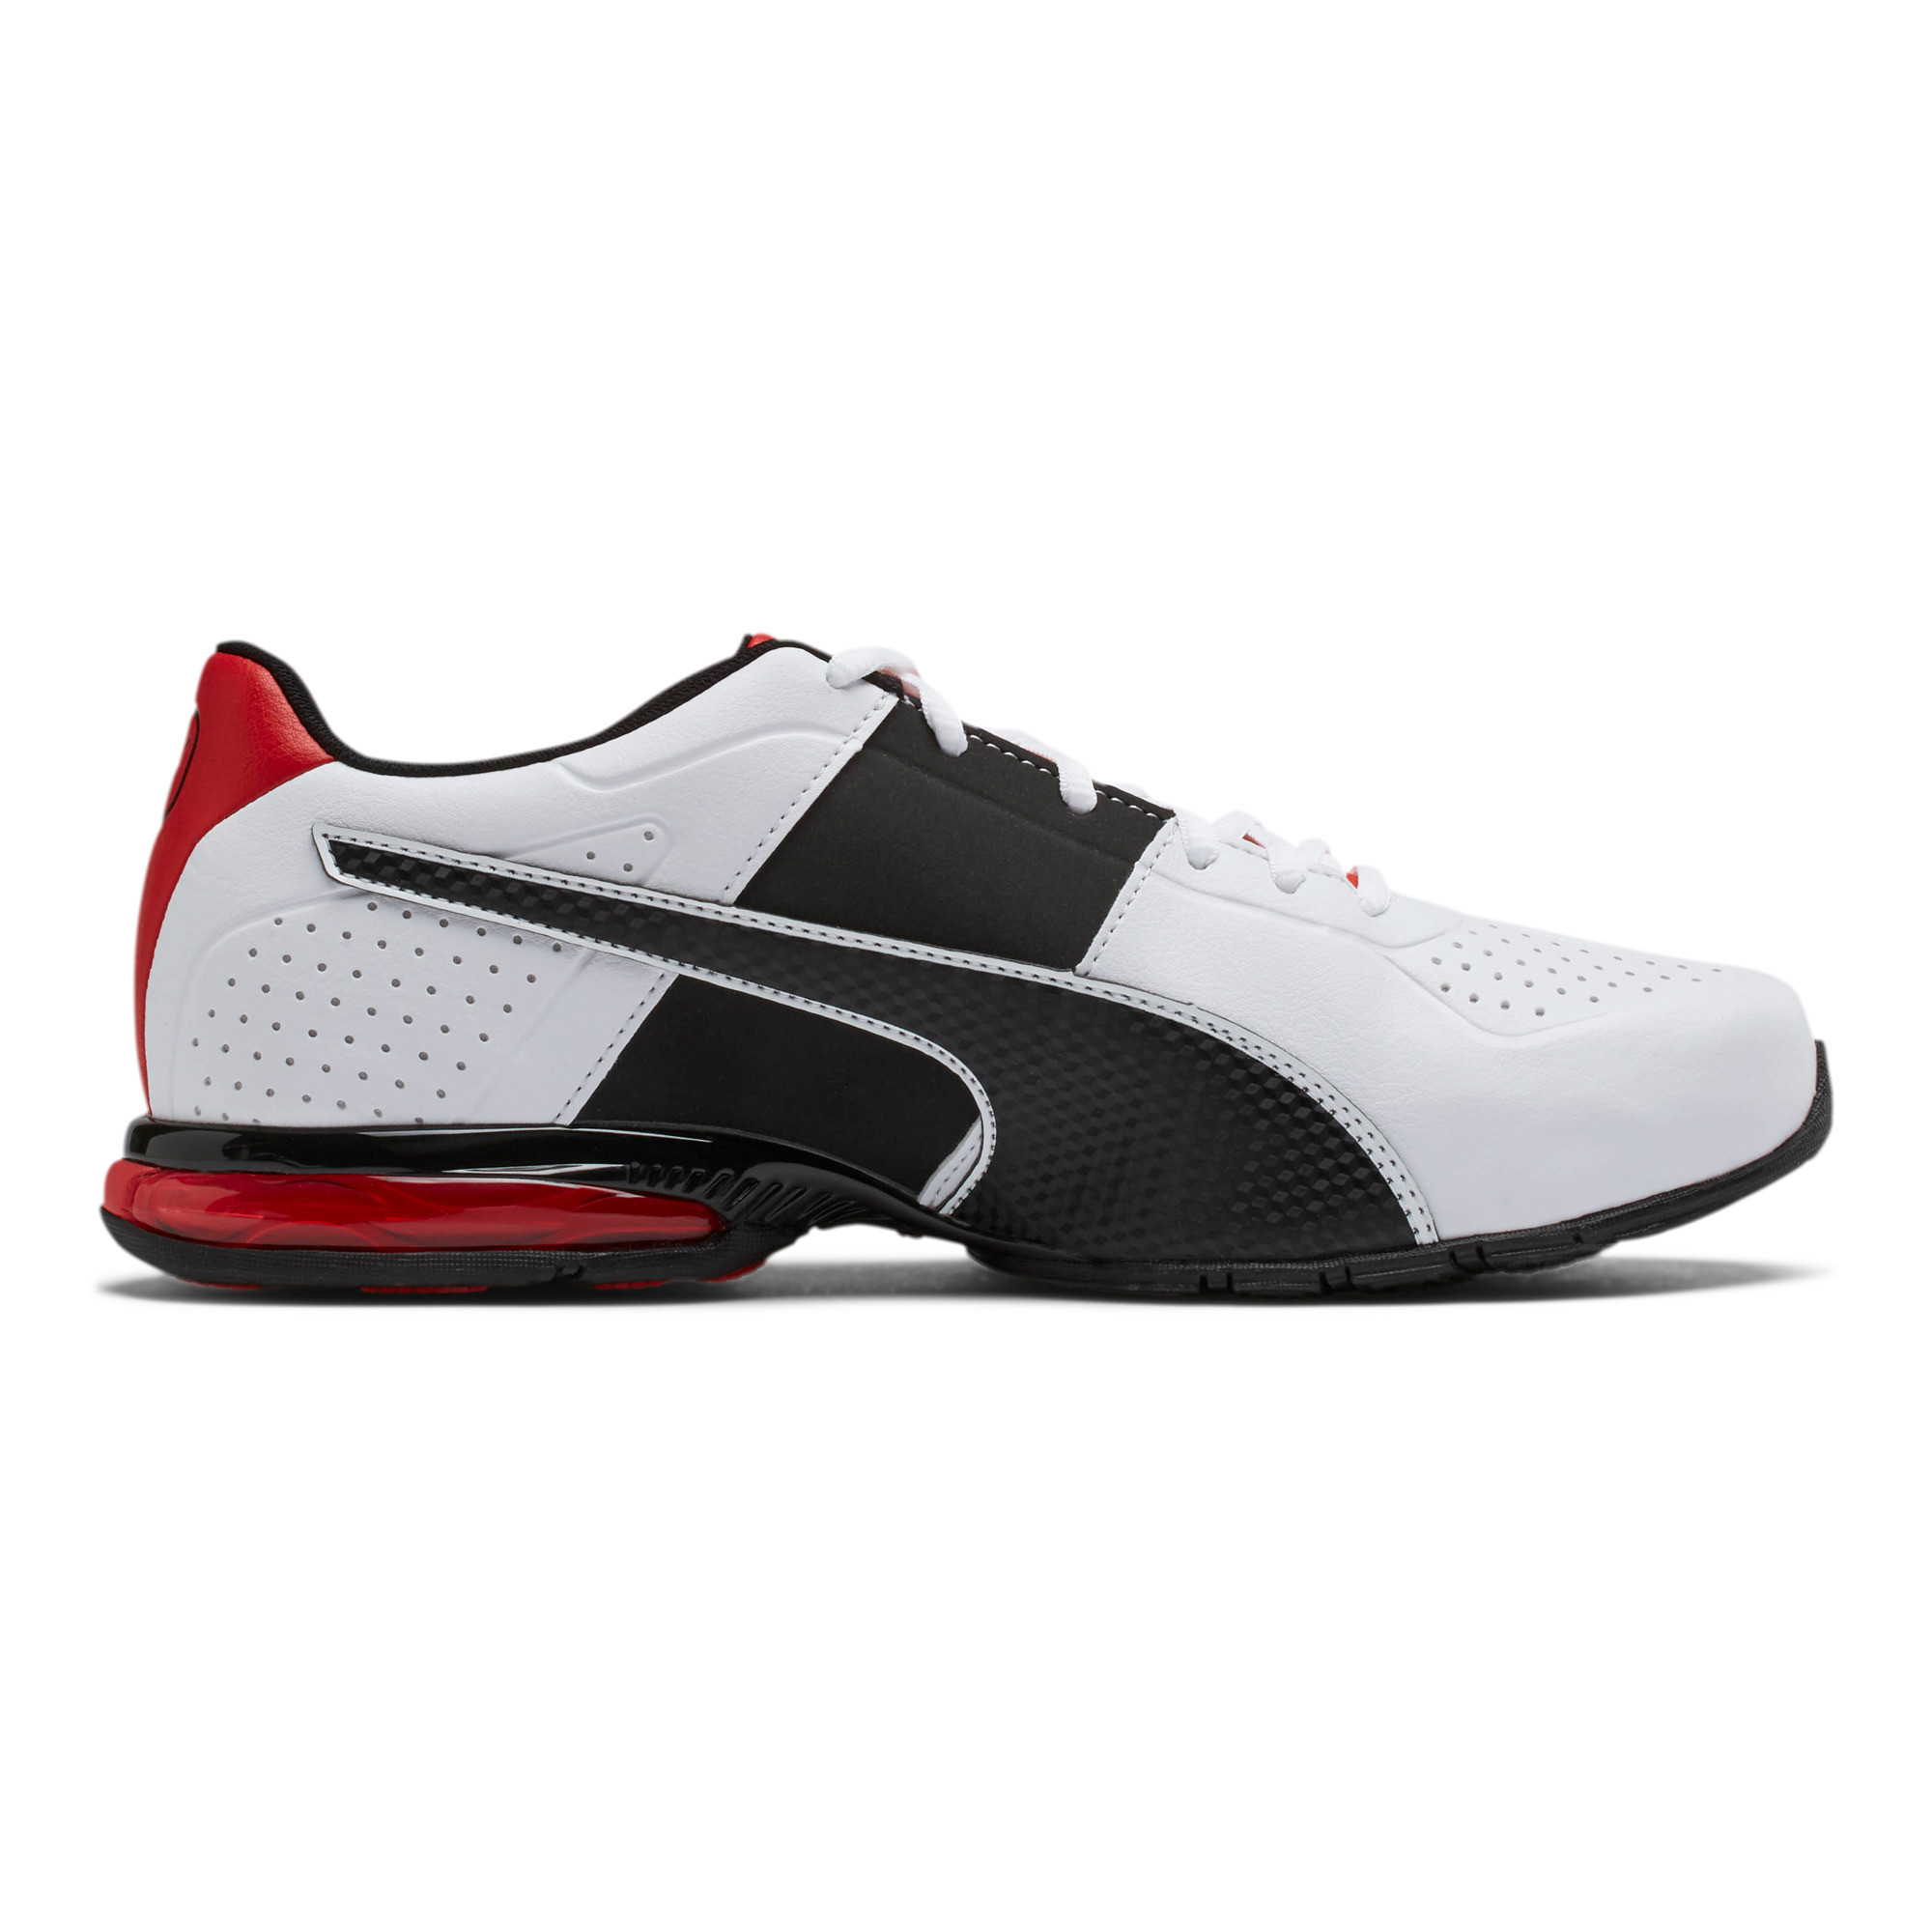 PUMA-Men-039-s-CELL-Surin-2-FM-Running-Shoes thumbnail 20